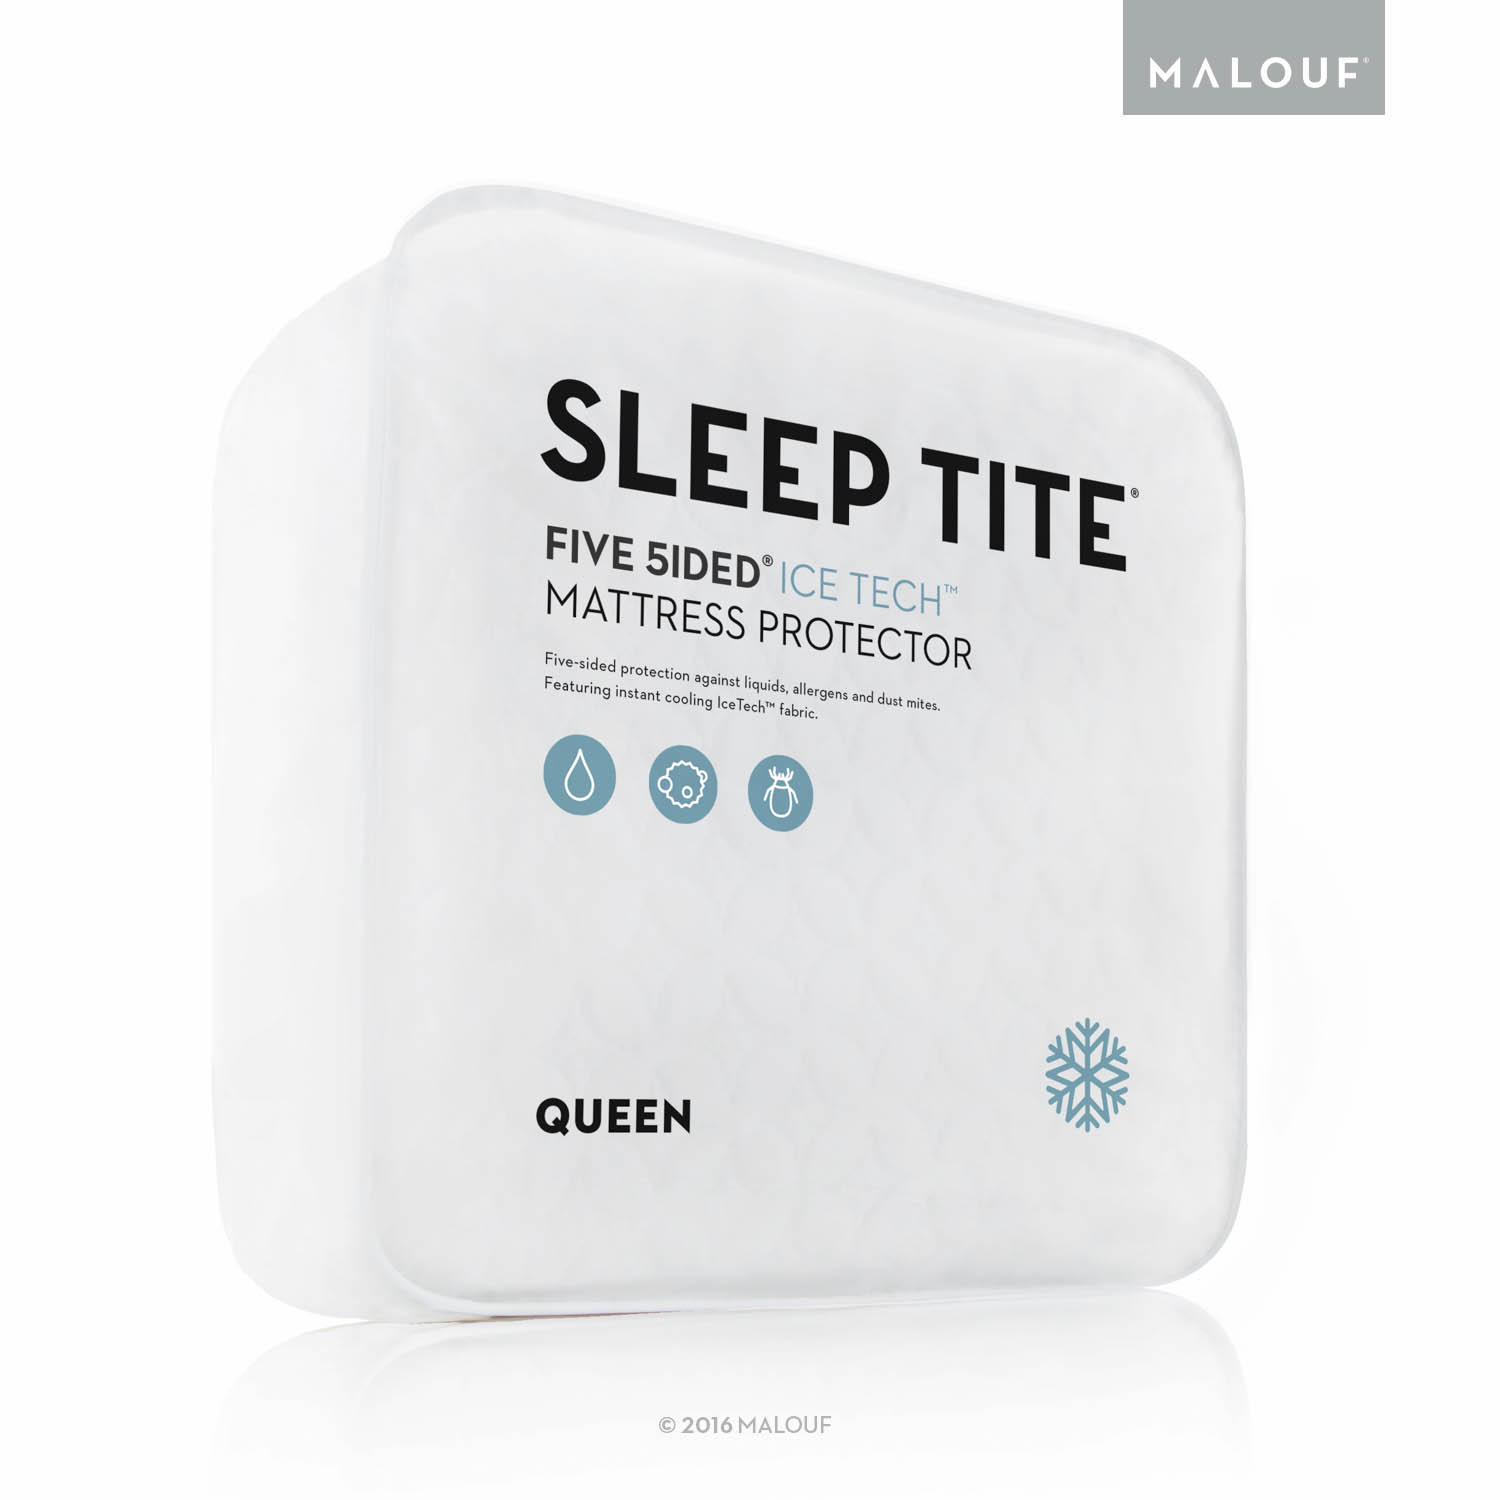 Sleep Tite IceTech Mattress Protector - SLICTT5P